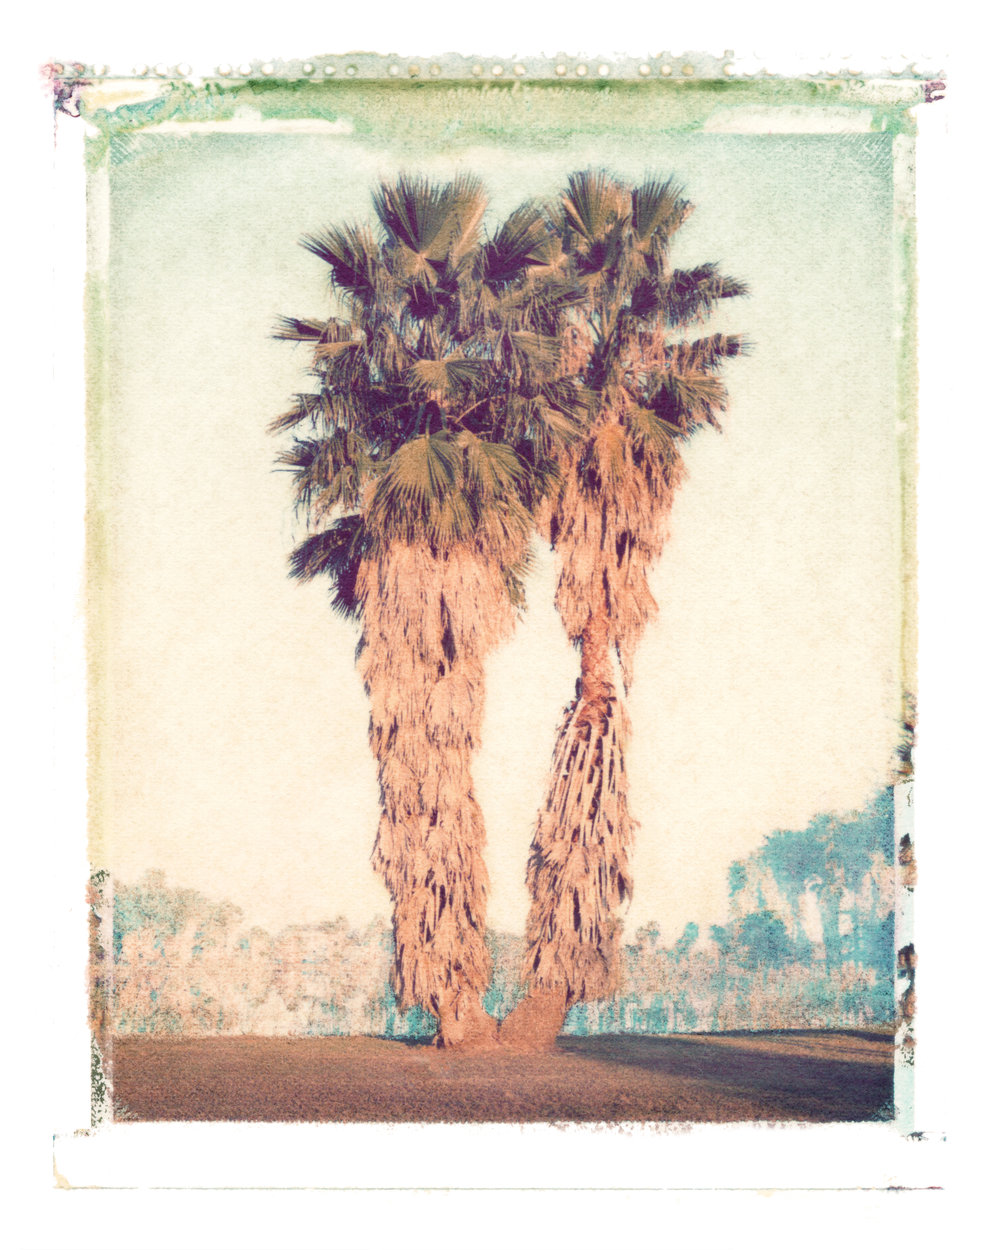 Washingtonia robusta  Clewiston, Florida, 1996